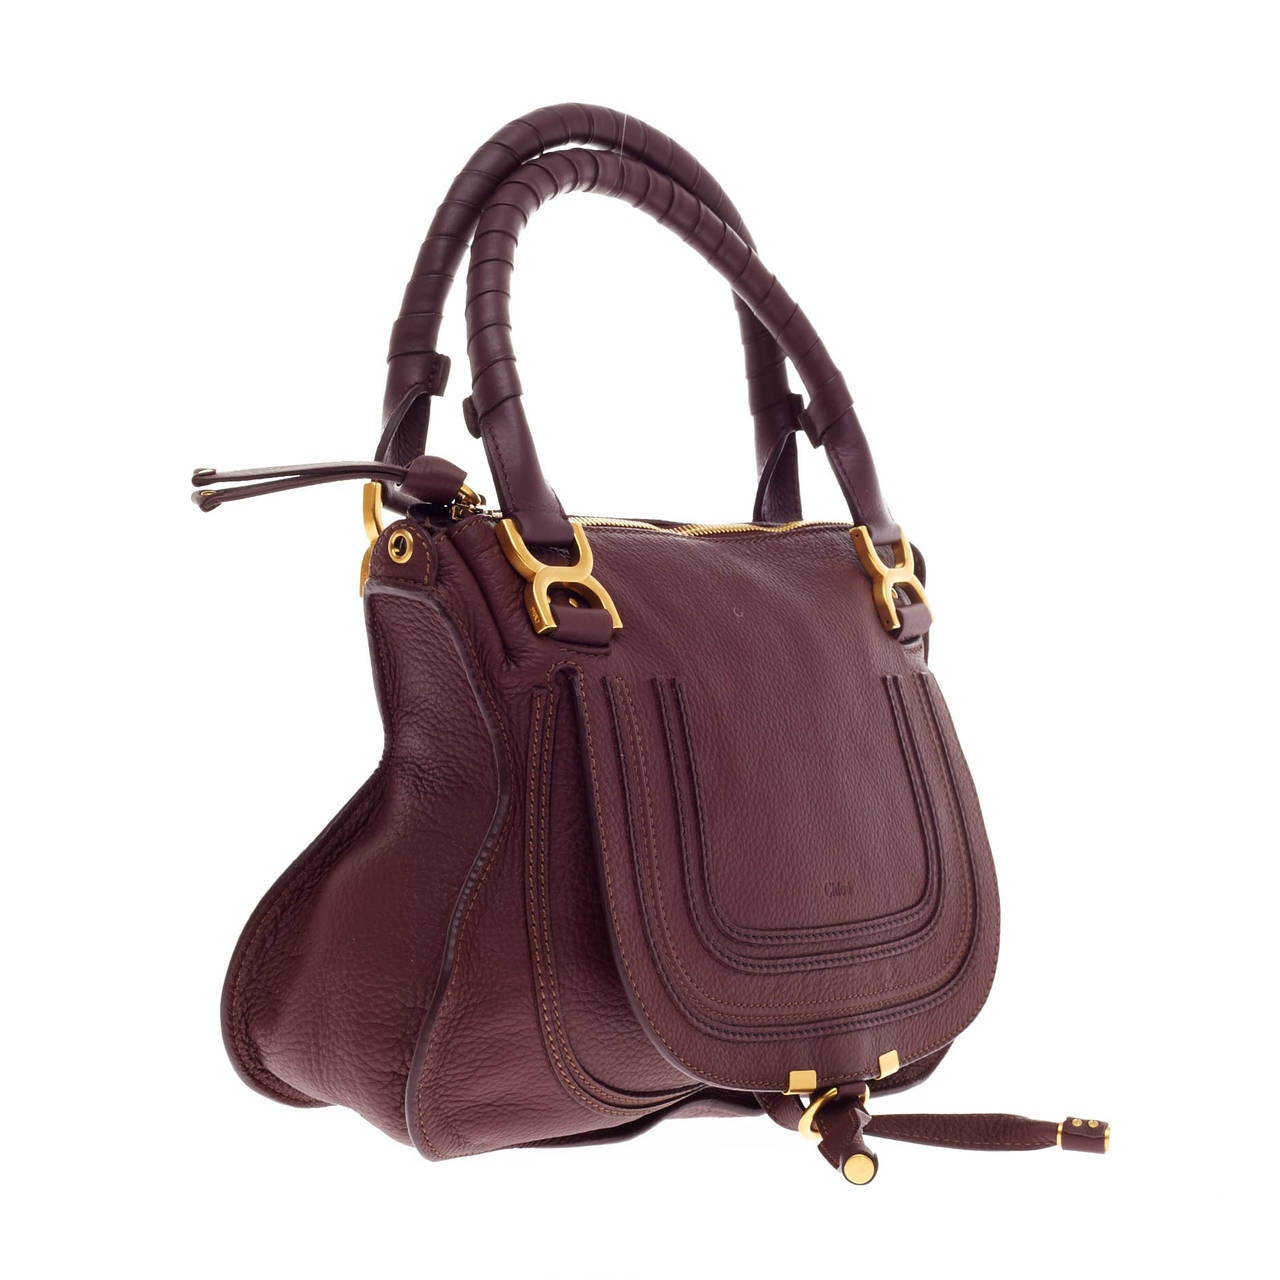 Chloe Marcie Top Handle Bag with Strap Leather Medium at 1stdibs